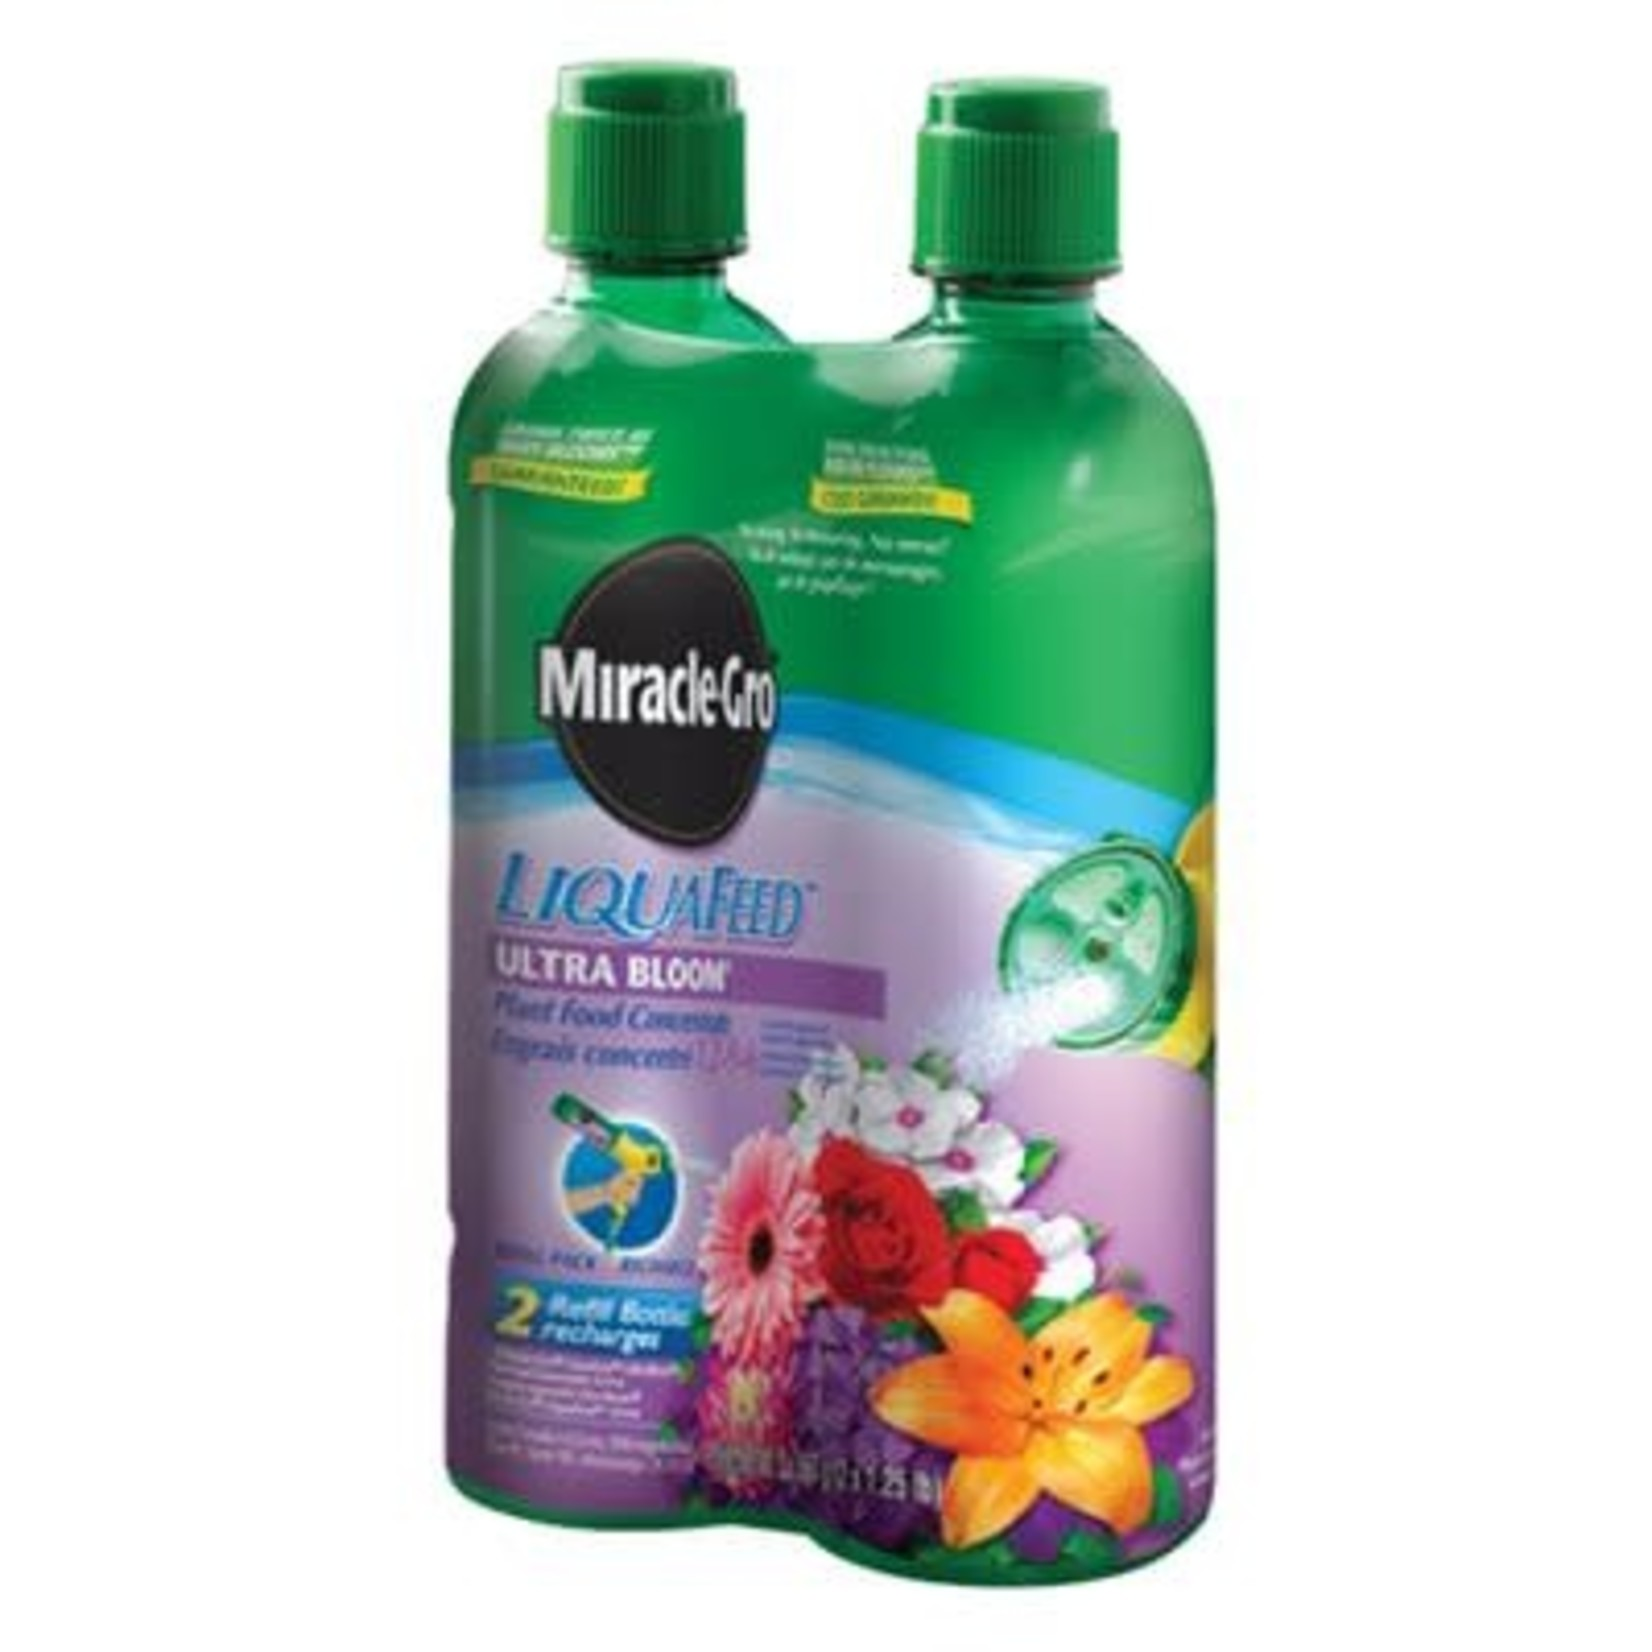 Miracle-Gro Liquafeed Ultra Bloom Refill12-9-6